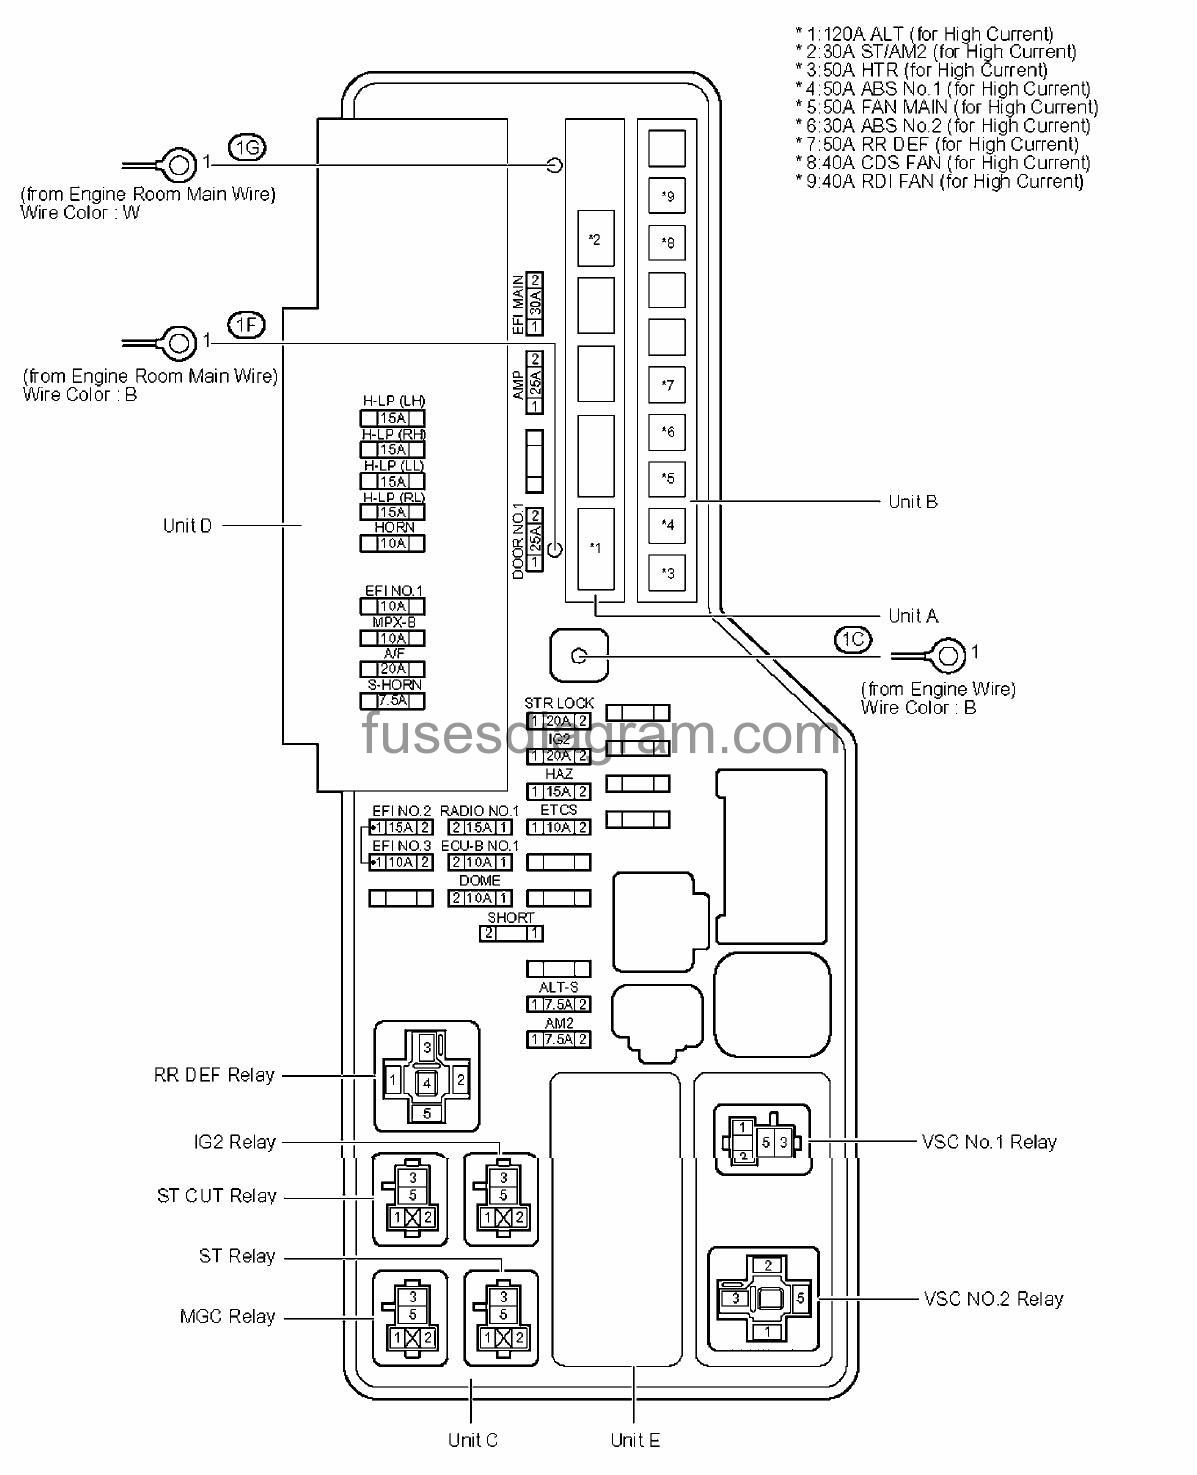 2006 Pontiac Montana Fuse Box Wiring Library Toyota Camry 2000 Simple Diagram 2002